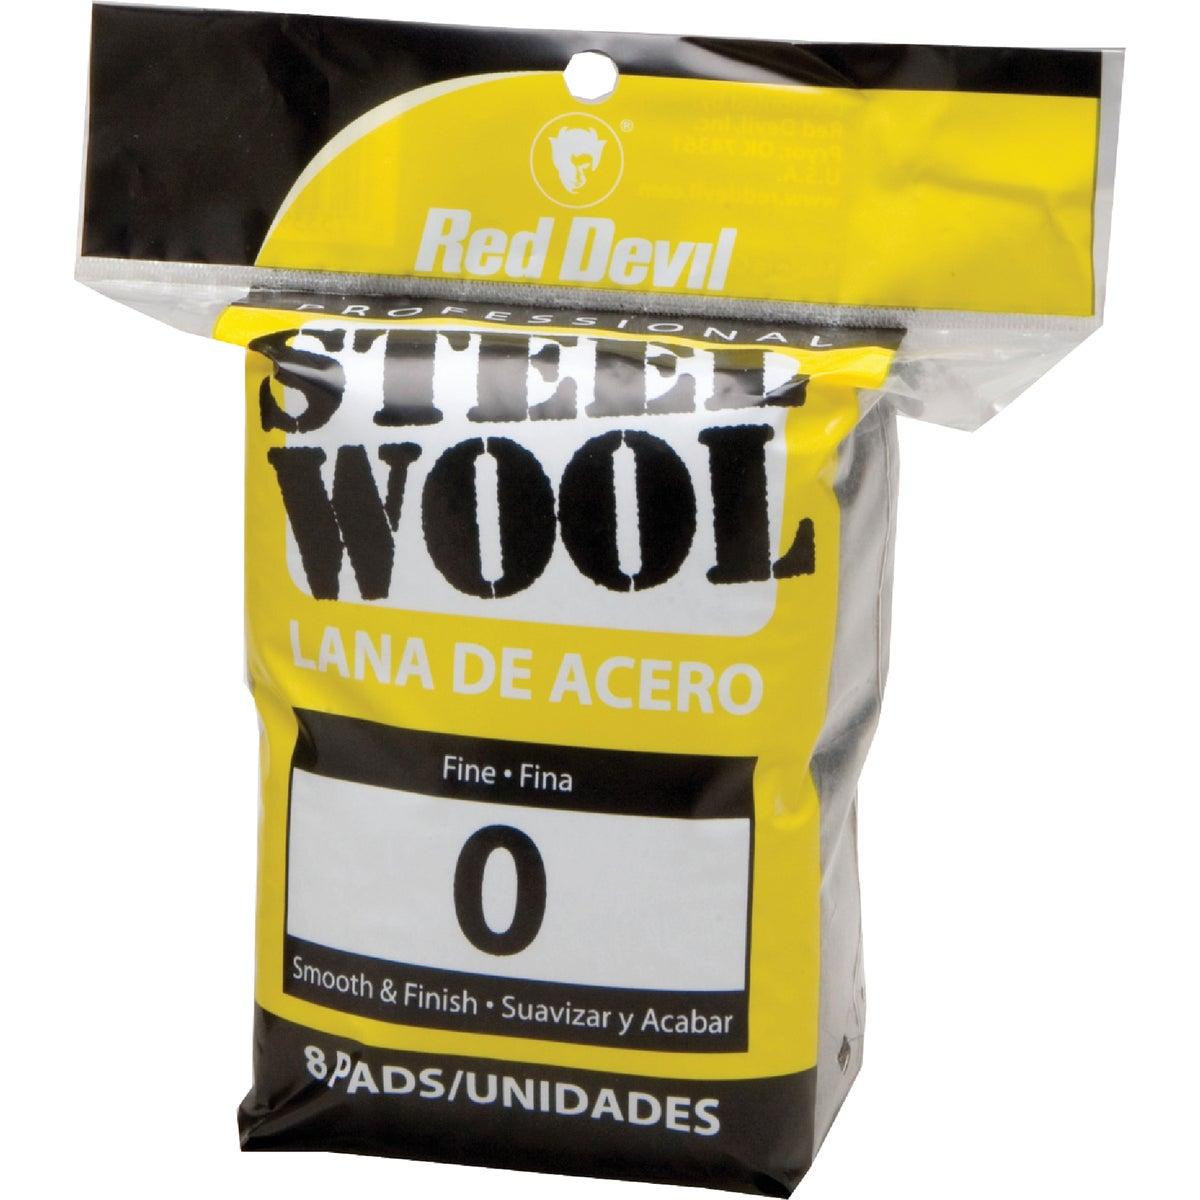 8PK #0 STEEL WOOL - 0323 by Red Devil